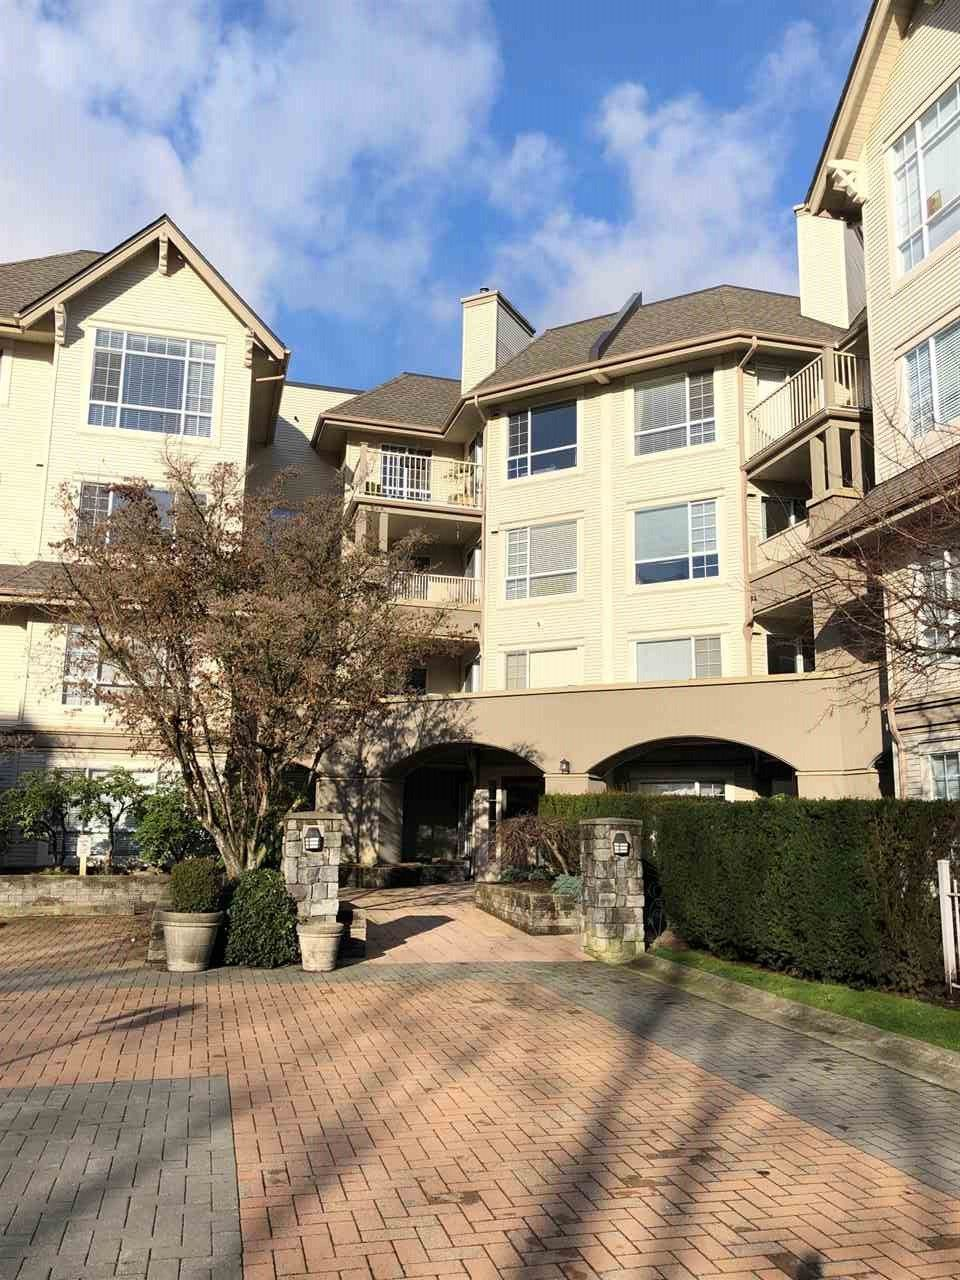 Main Photo: 127 1252 TOWN CENTRE BOULEVARD in Coquitlam: Canyon Springs Condo for sale : MLS®# R2433410